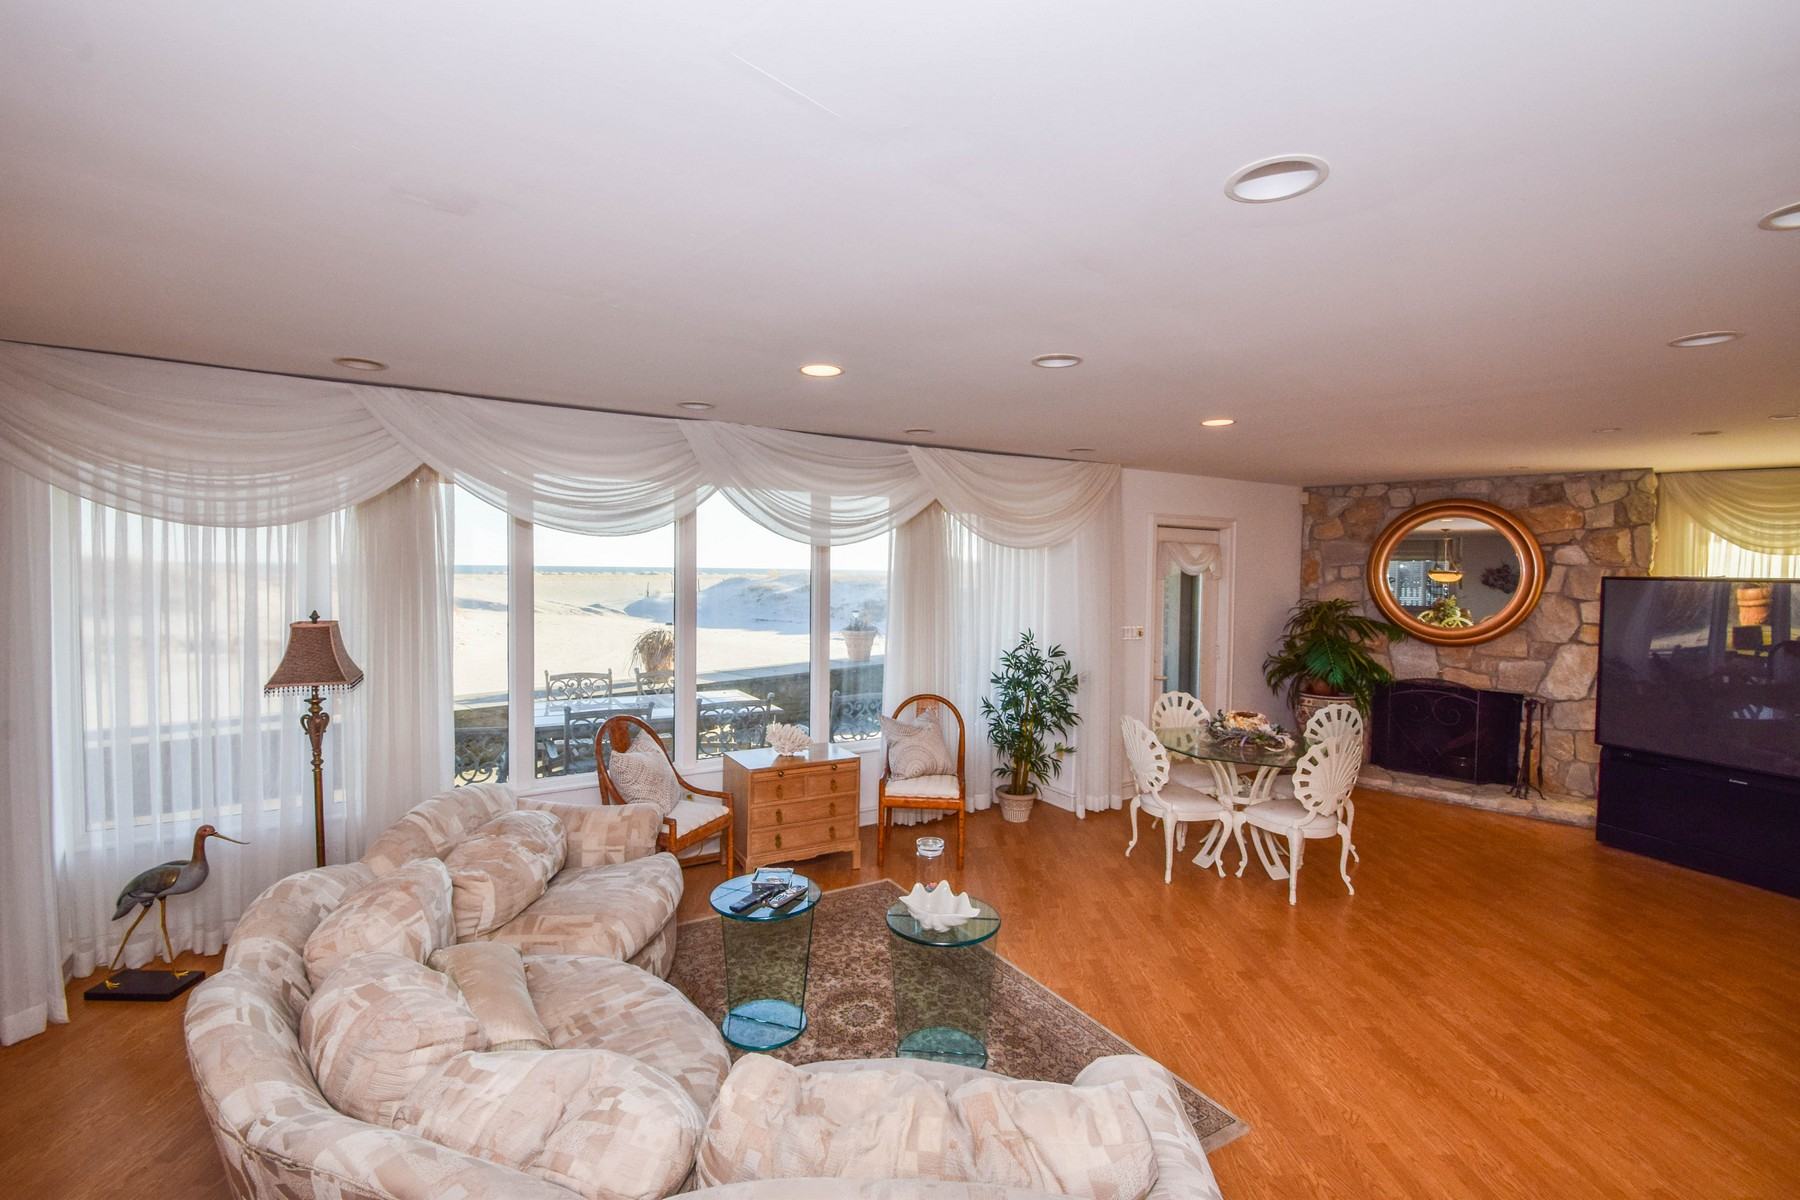 Additional photo for property listing at 111 S UNION AVENUE 111 S Union Avenue Margate, New Jersey 08402 United States